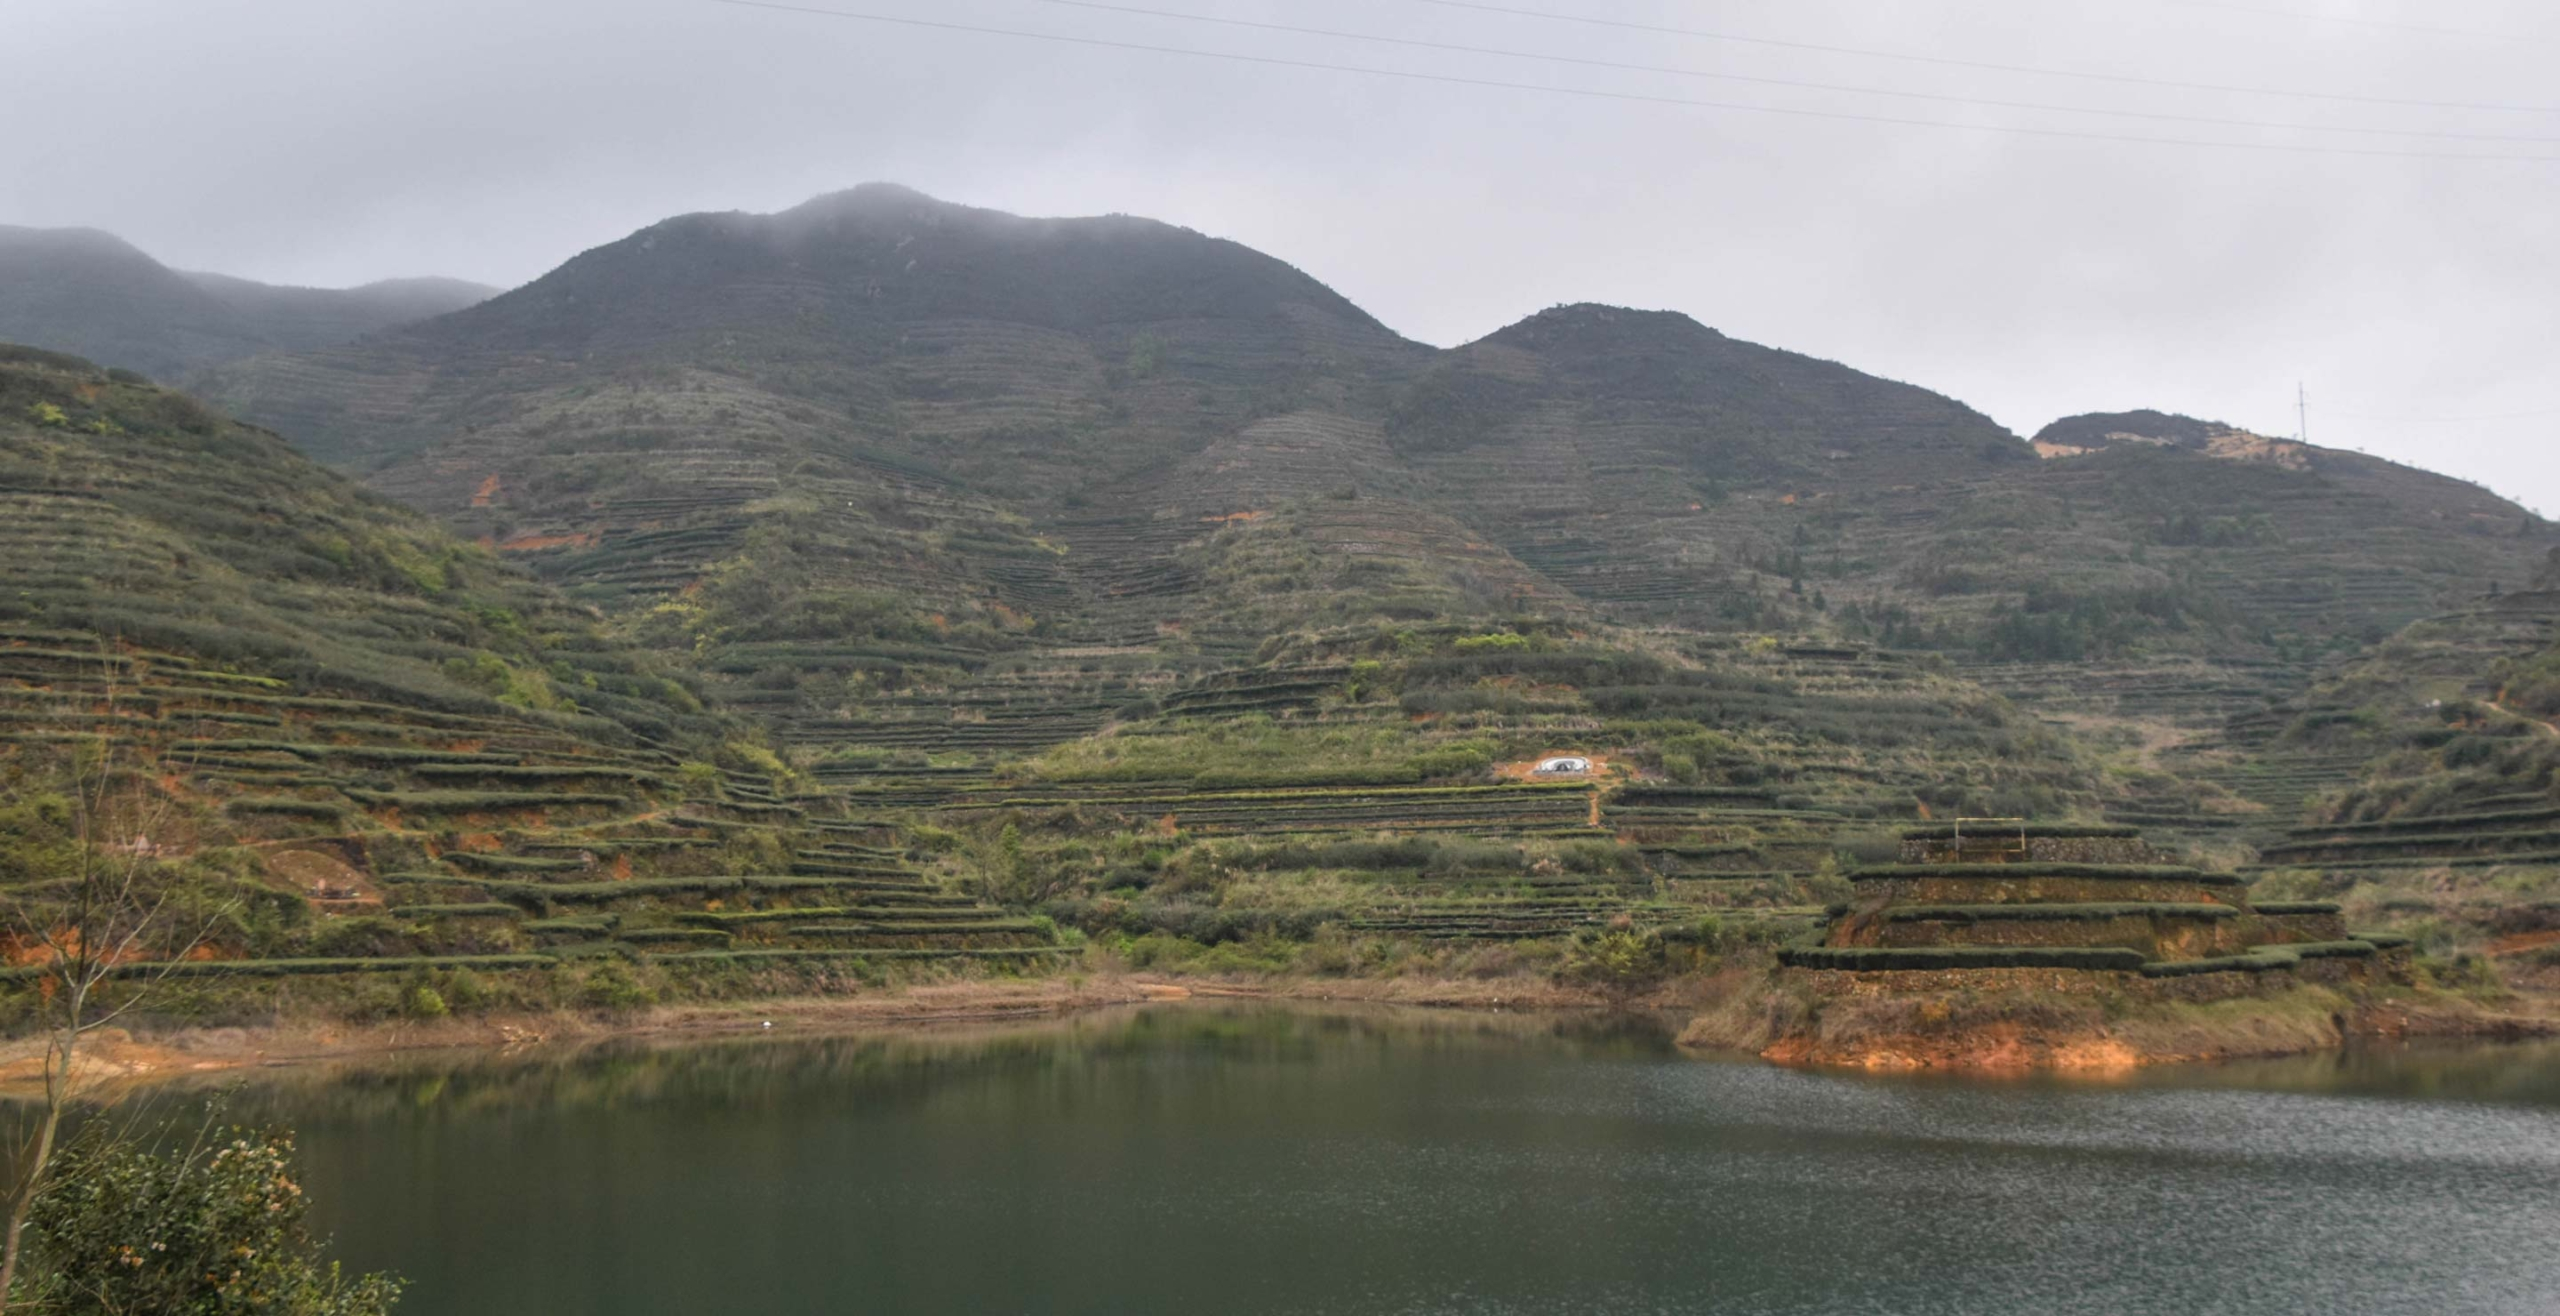 2017-daping-field-reservoir-0130_largex2